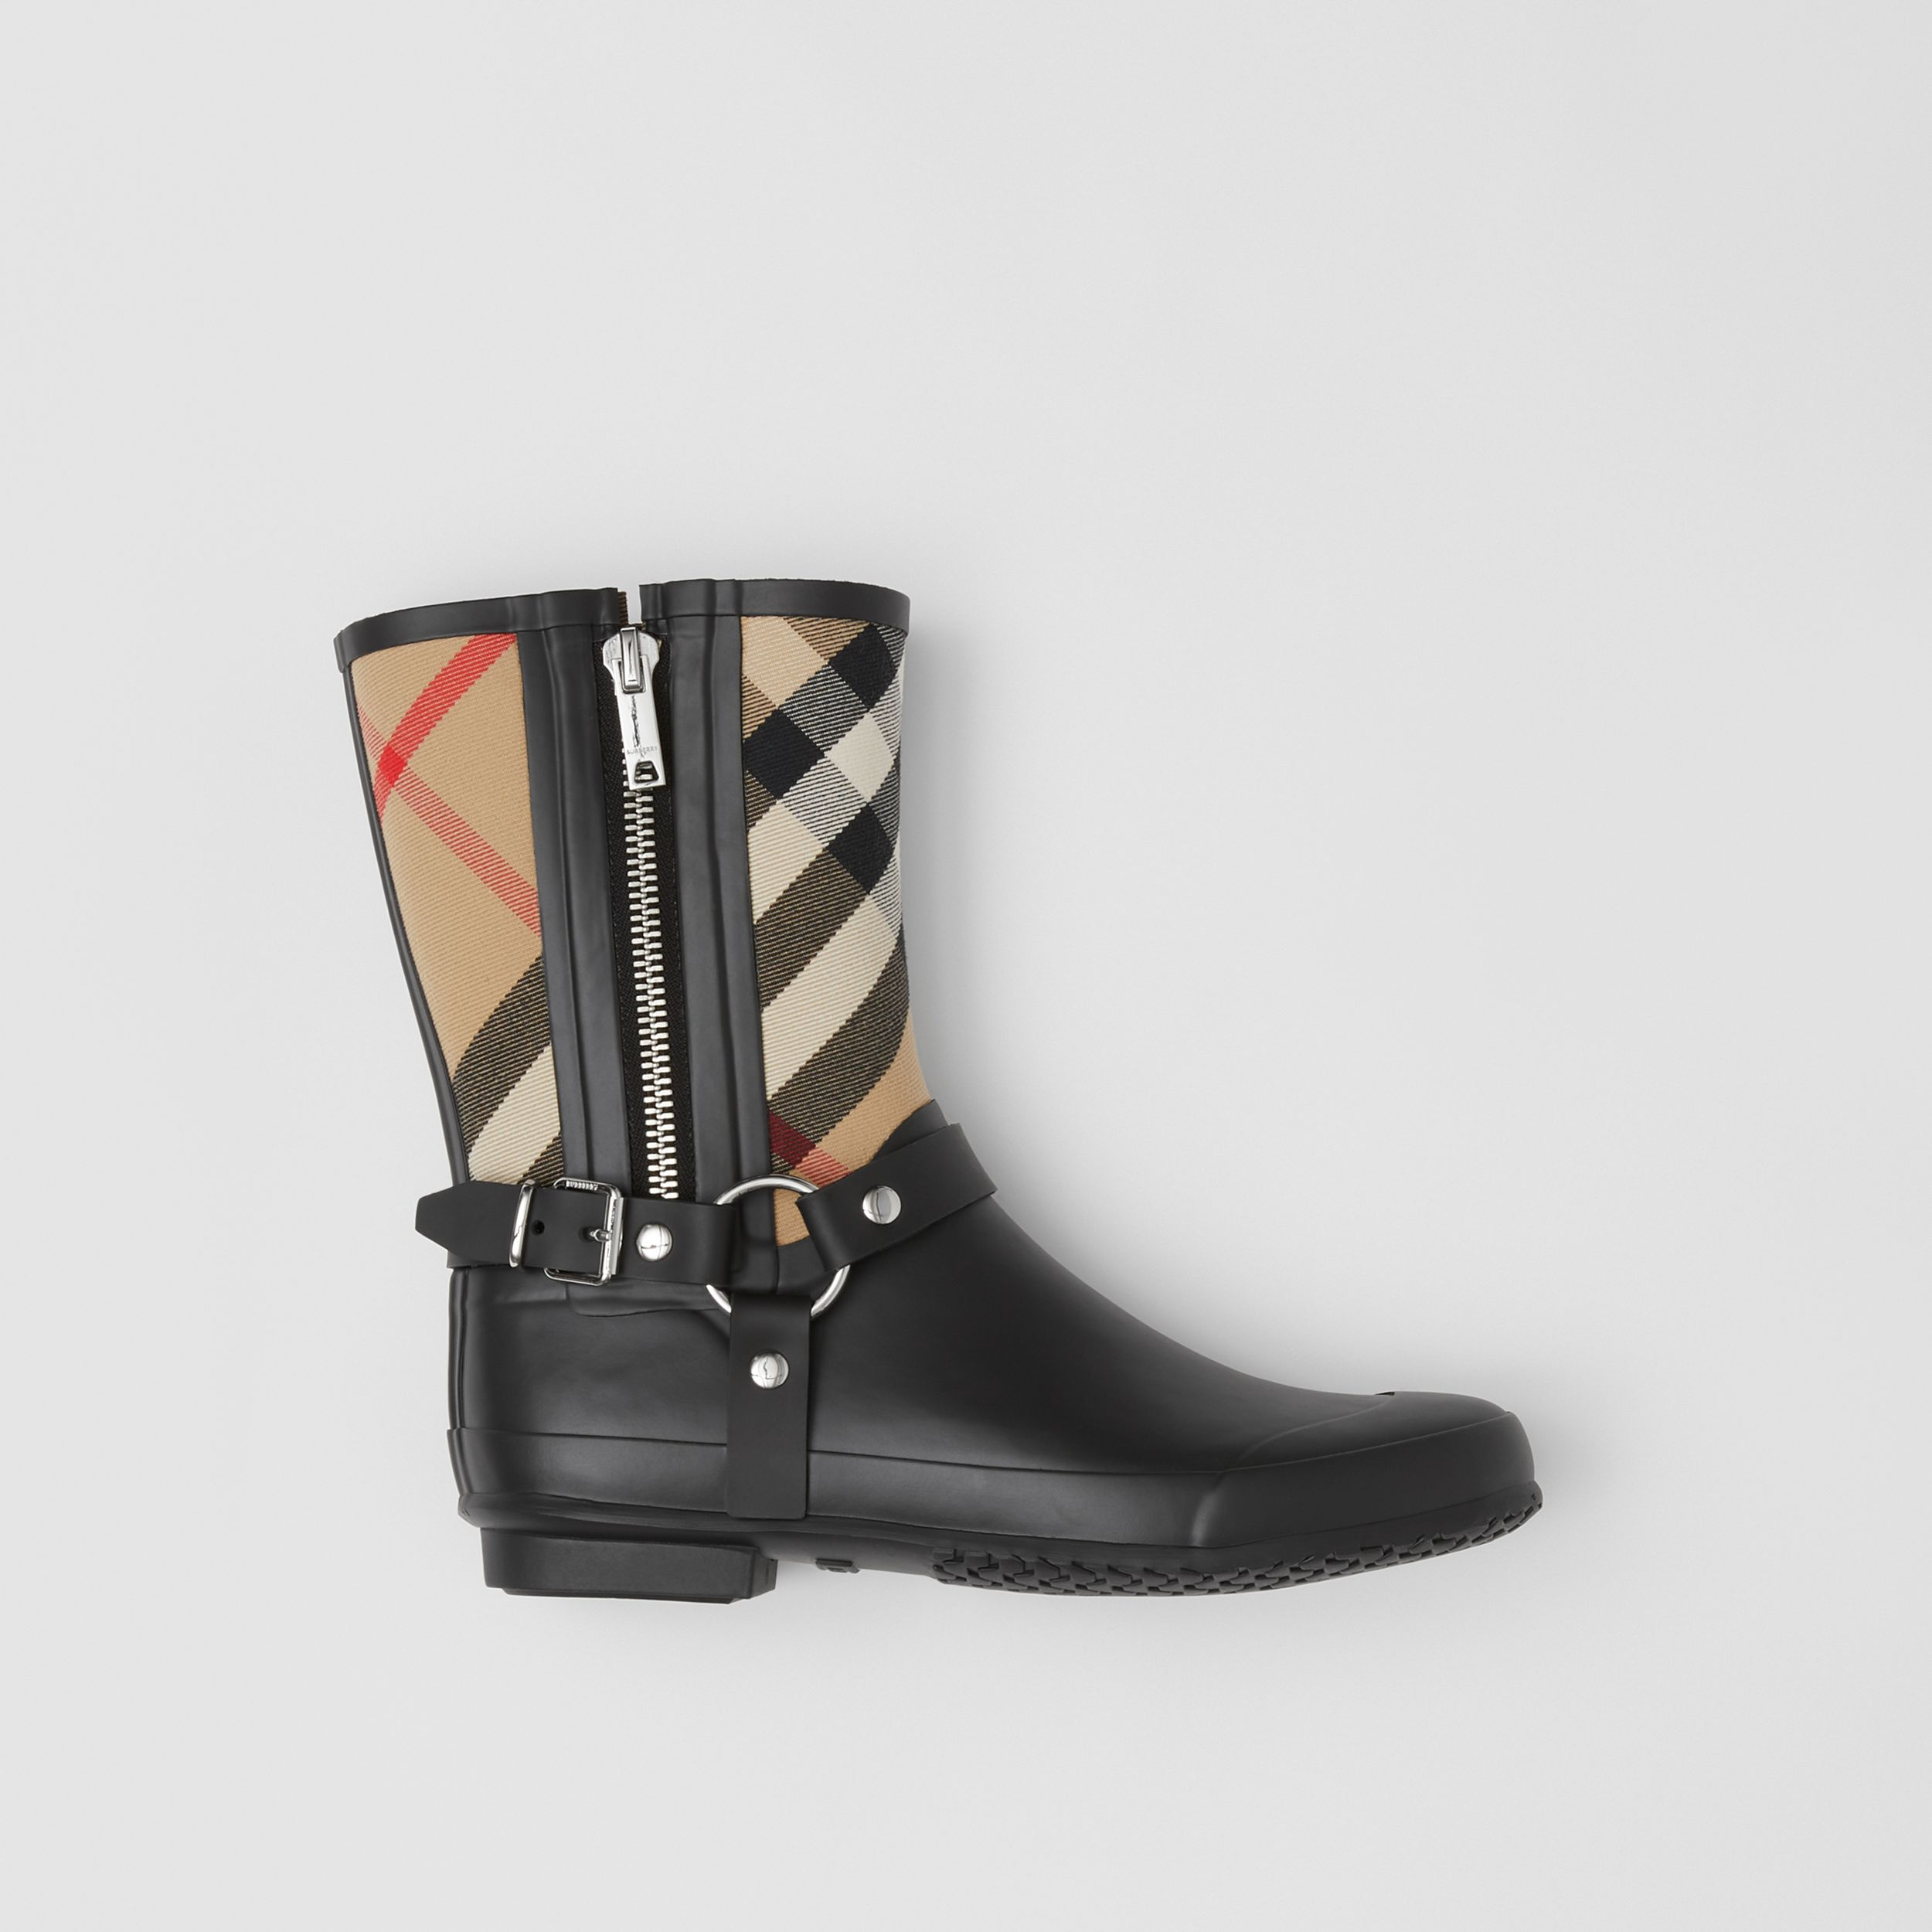 Strap Detail House Check Rubber Rain Boots in Black/archive Beige - Women | Burberry Australia - 1